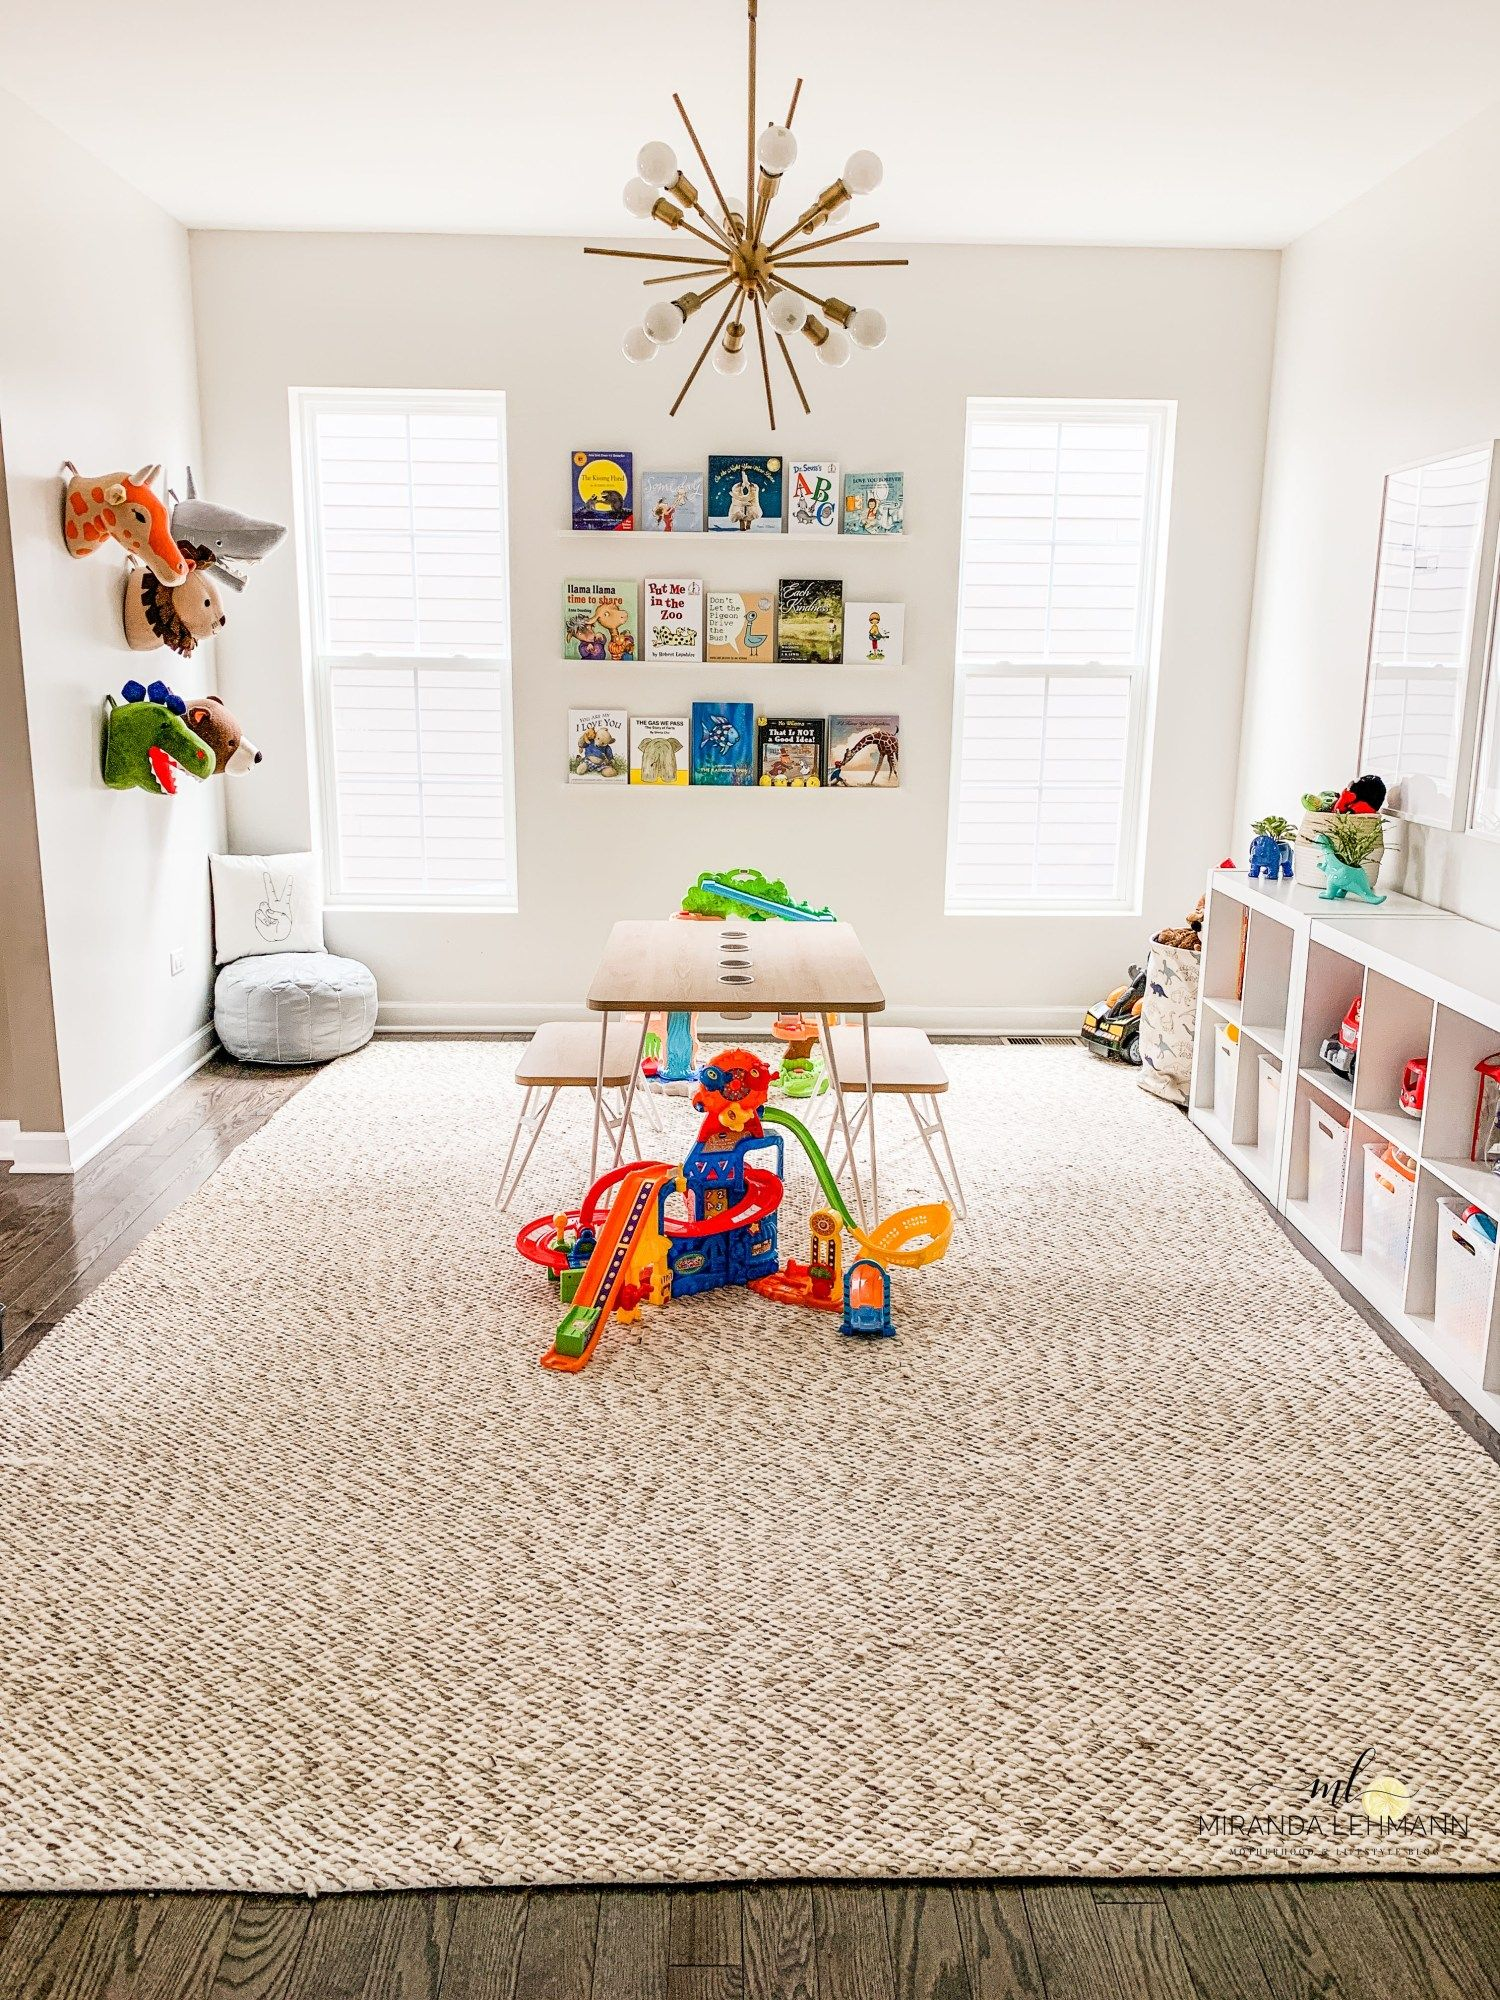 Pin By Jessica Mcbride On Kid Ideas In 2020 | Playroom Decor